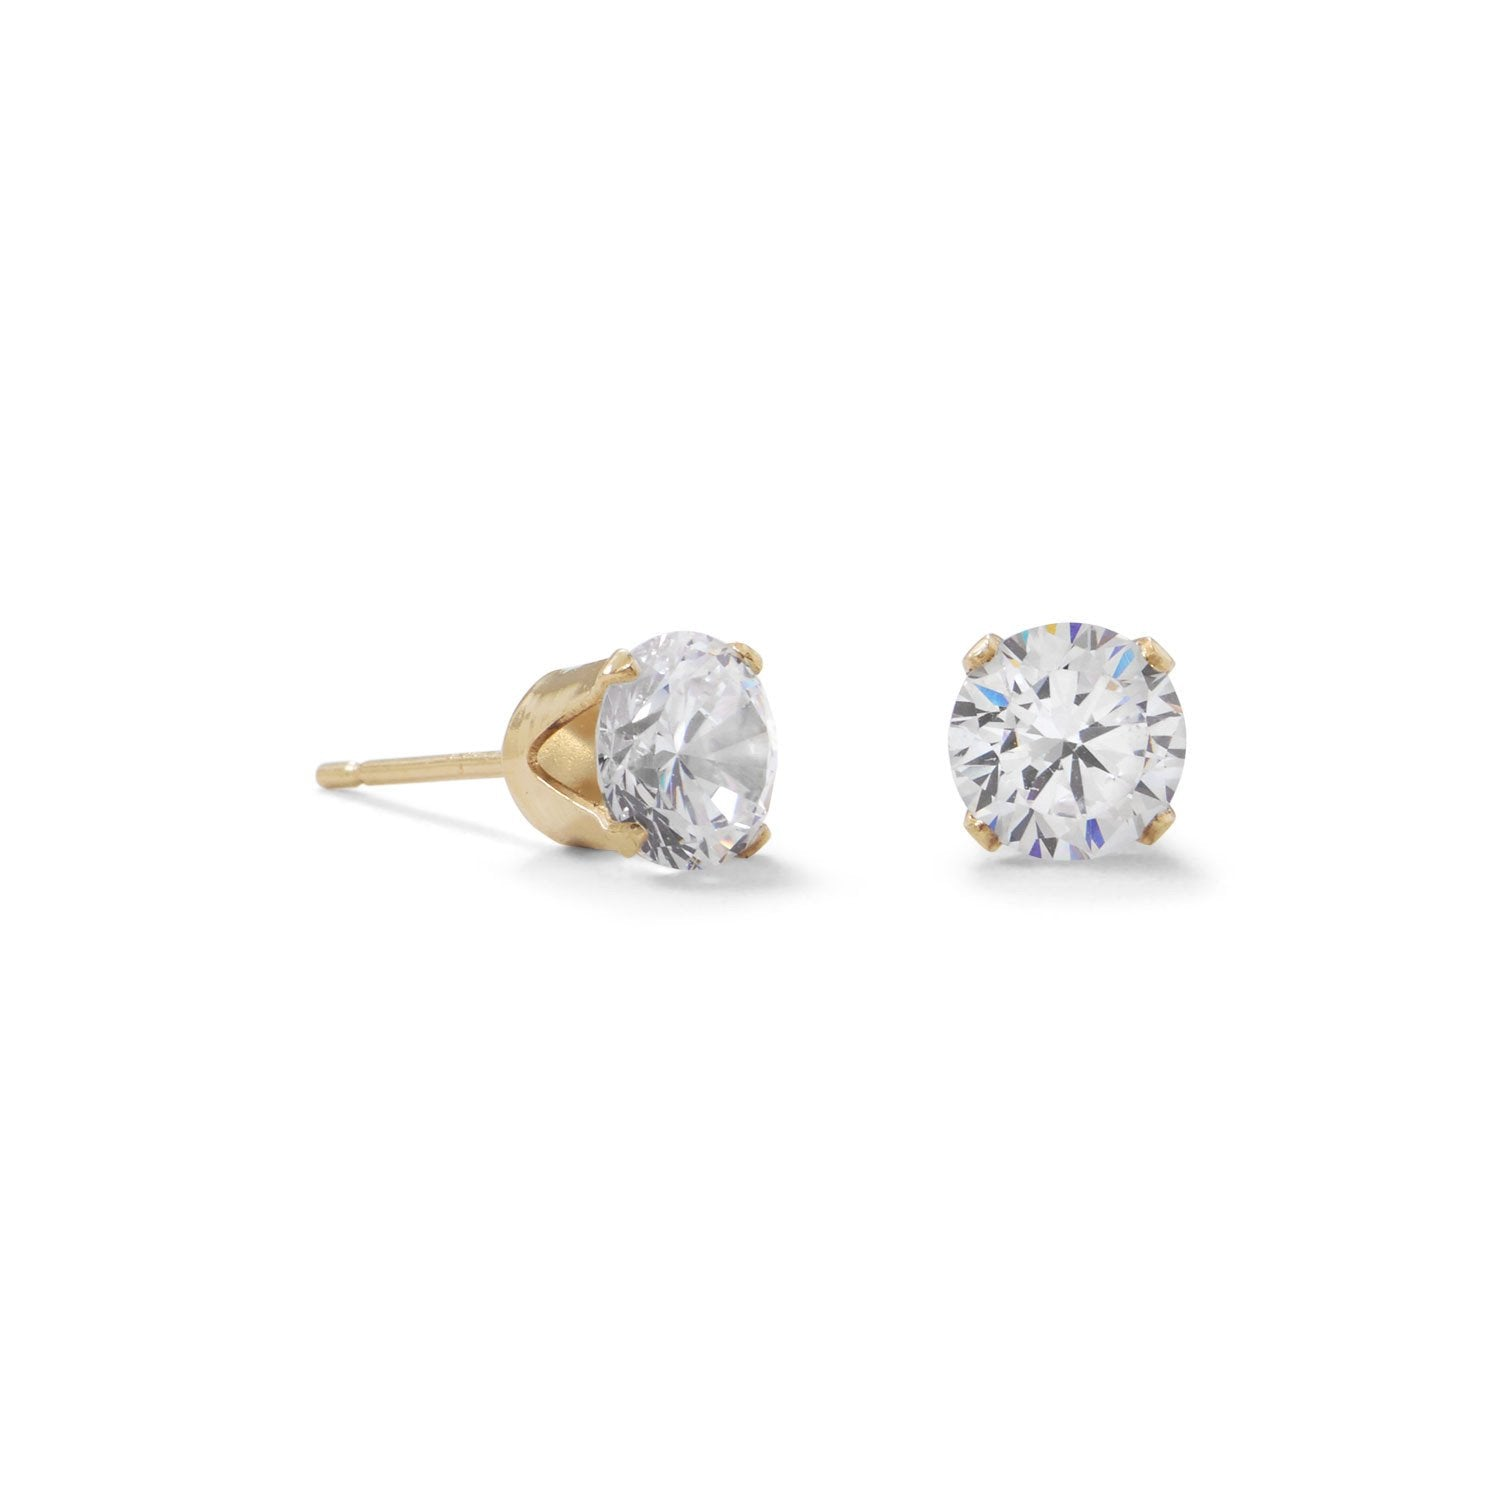 Gold Filled CZ Stud Earrings - the-southern-magnolia-too